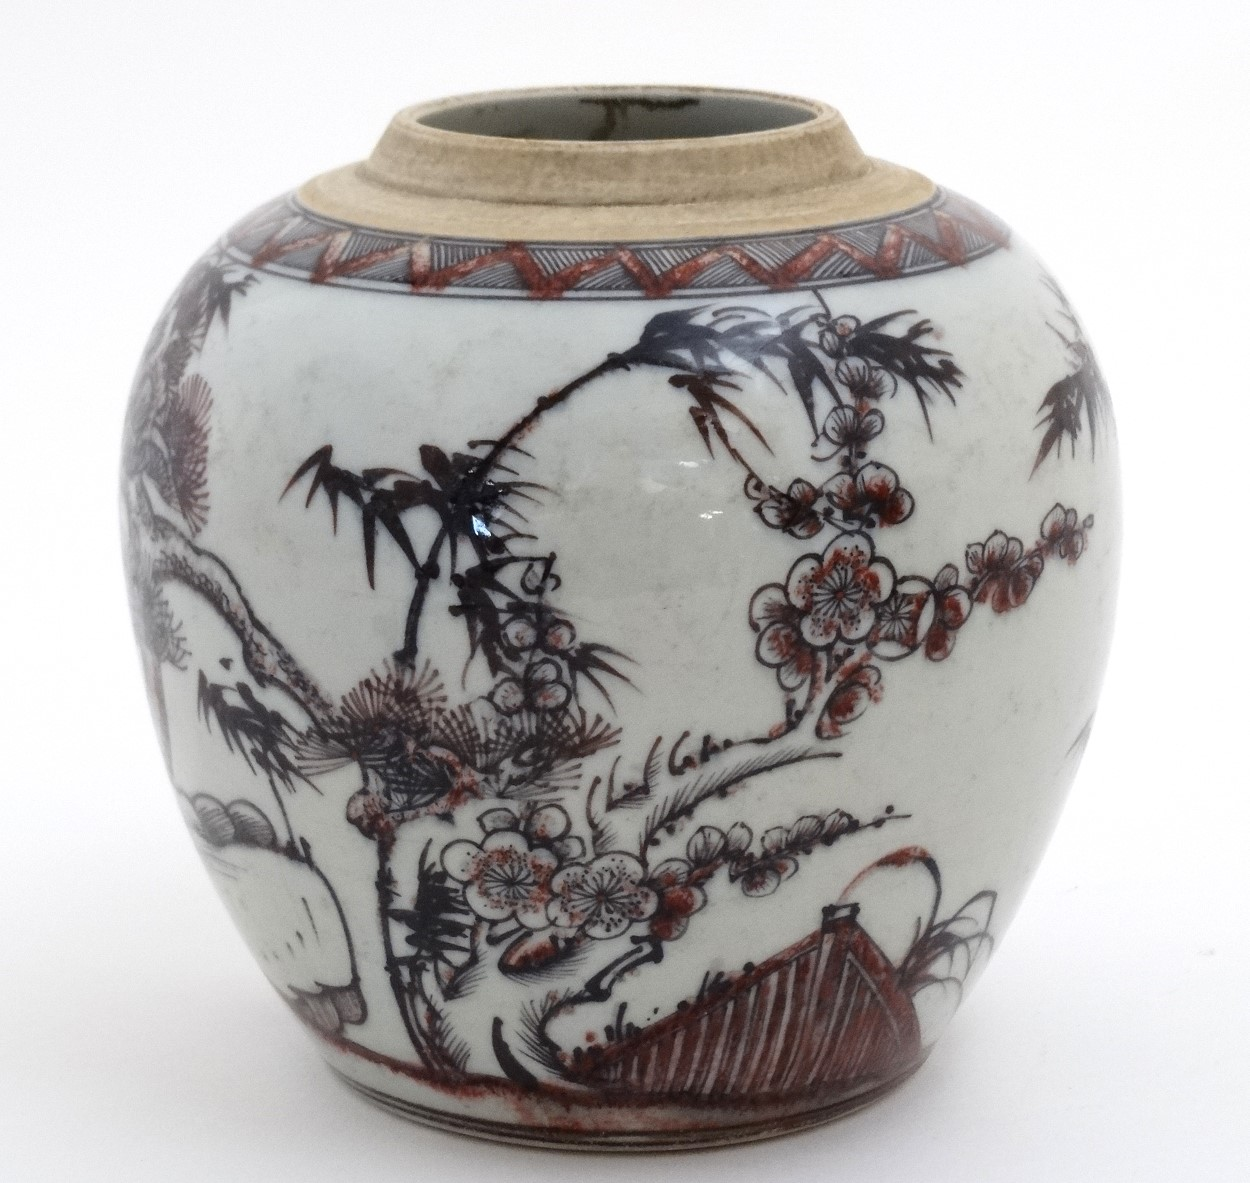 Lot 41 - A Chinese red, black and white vase decorated with cherry blossom and bamboo on a rocky outcrop,